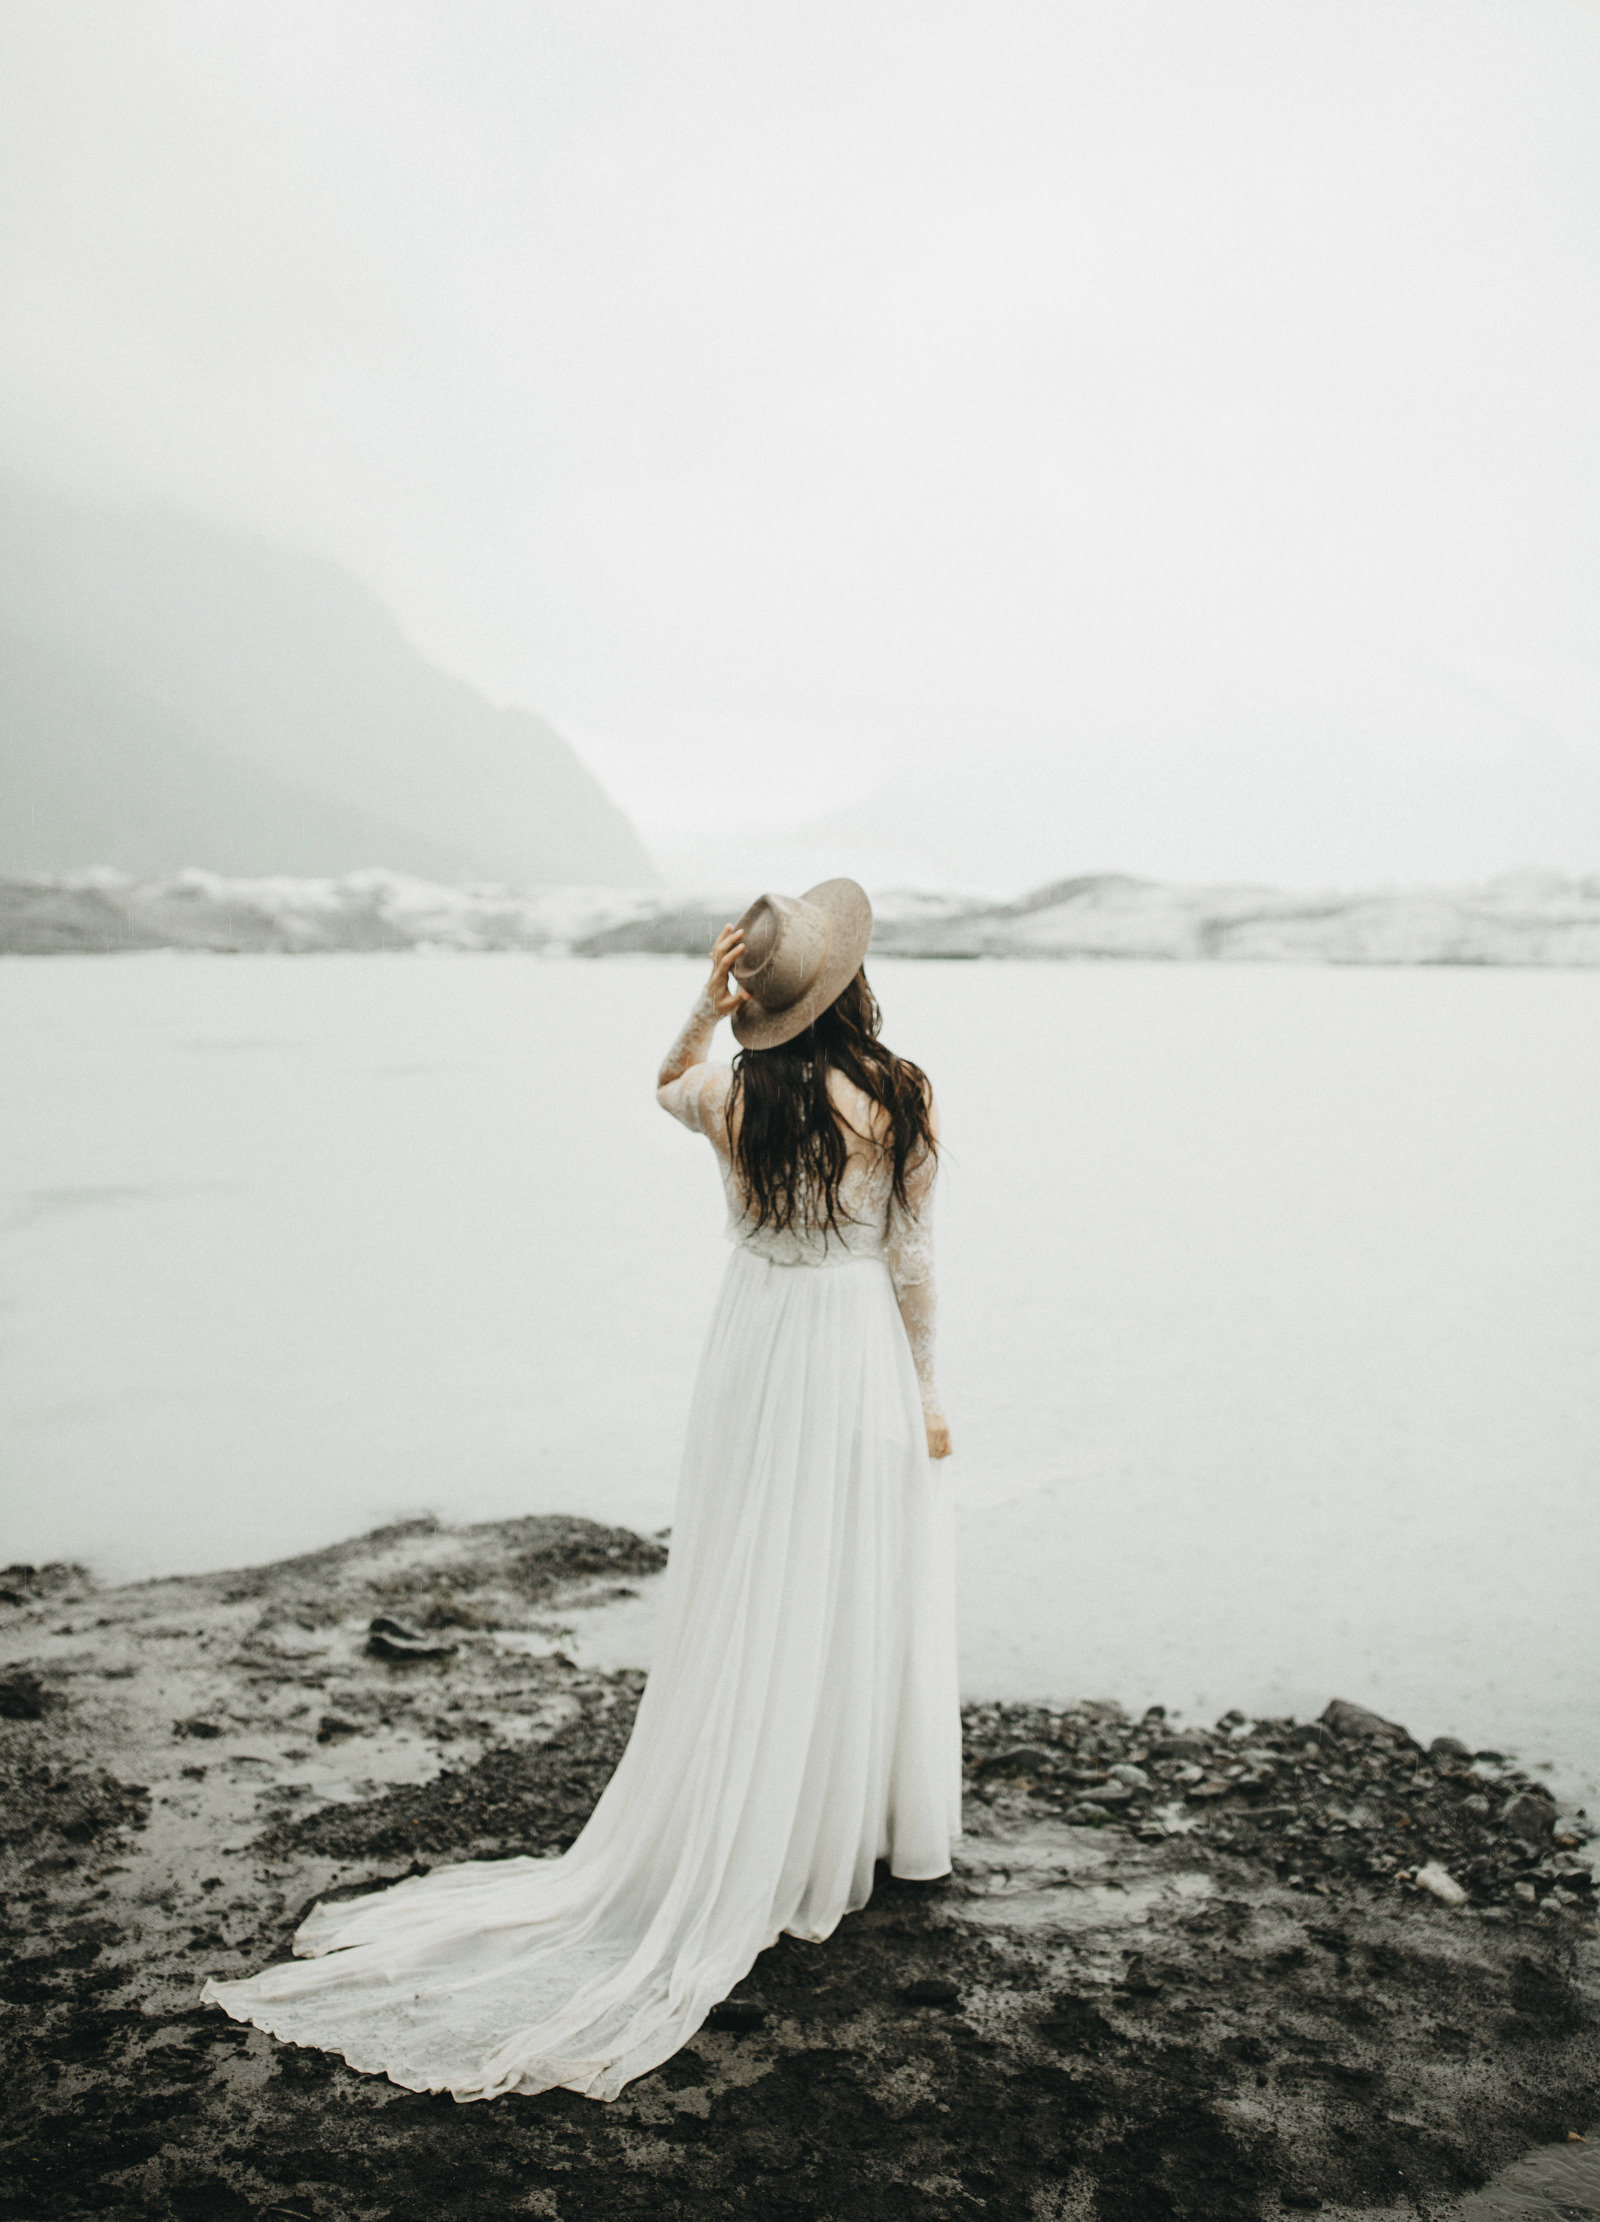 athena-and-camron-alaska-elopement-wedding-inspiration-india-earl-athena-grace-glacier-lagoon-wedding98